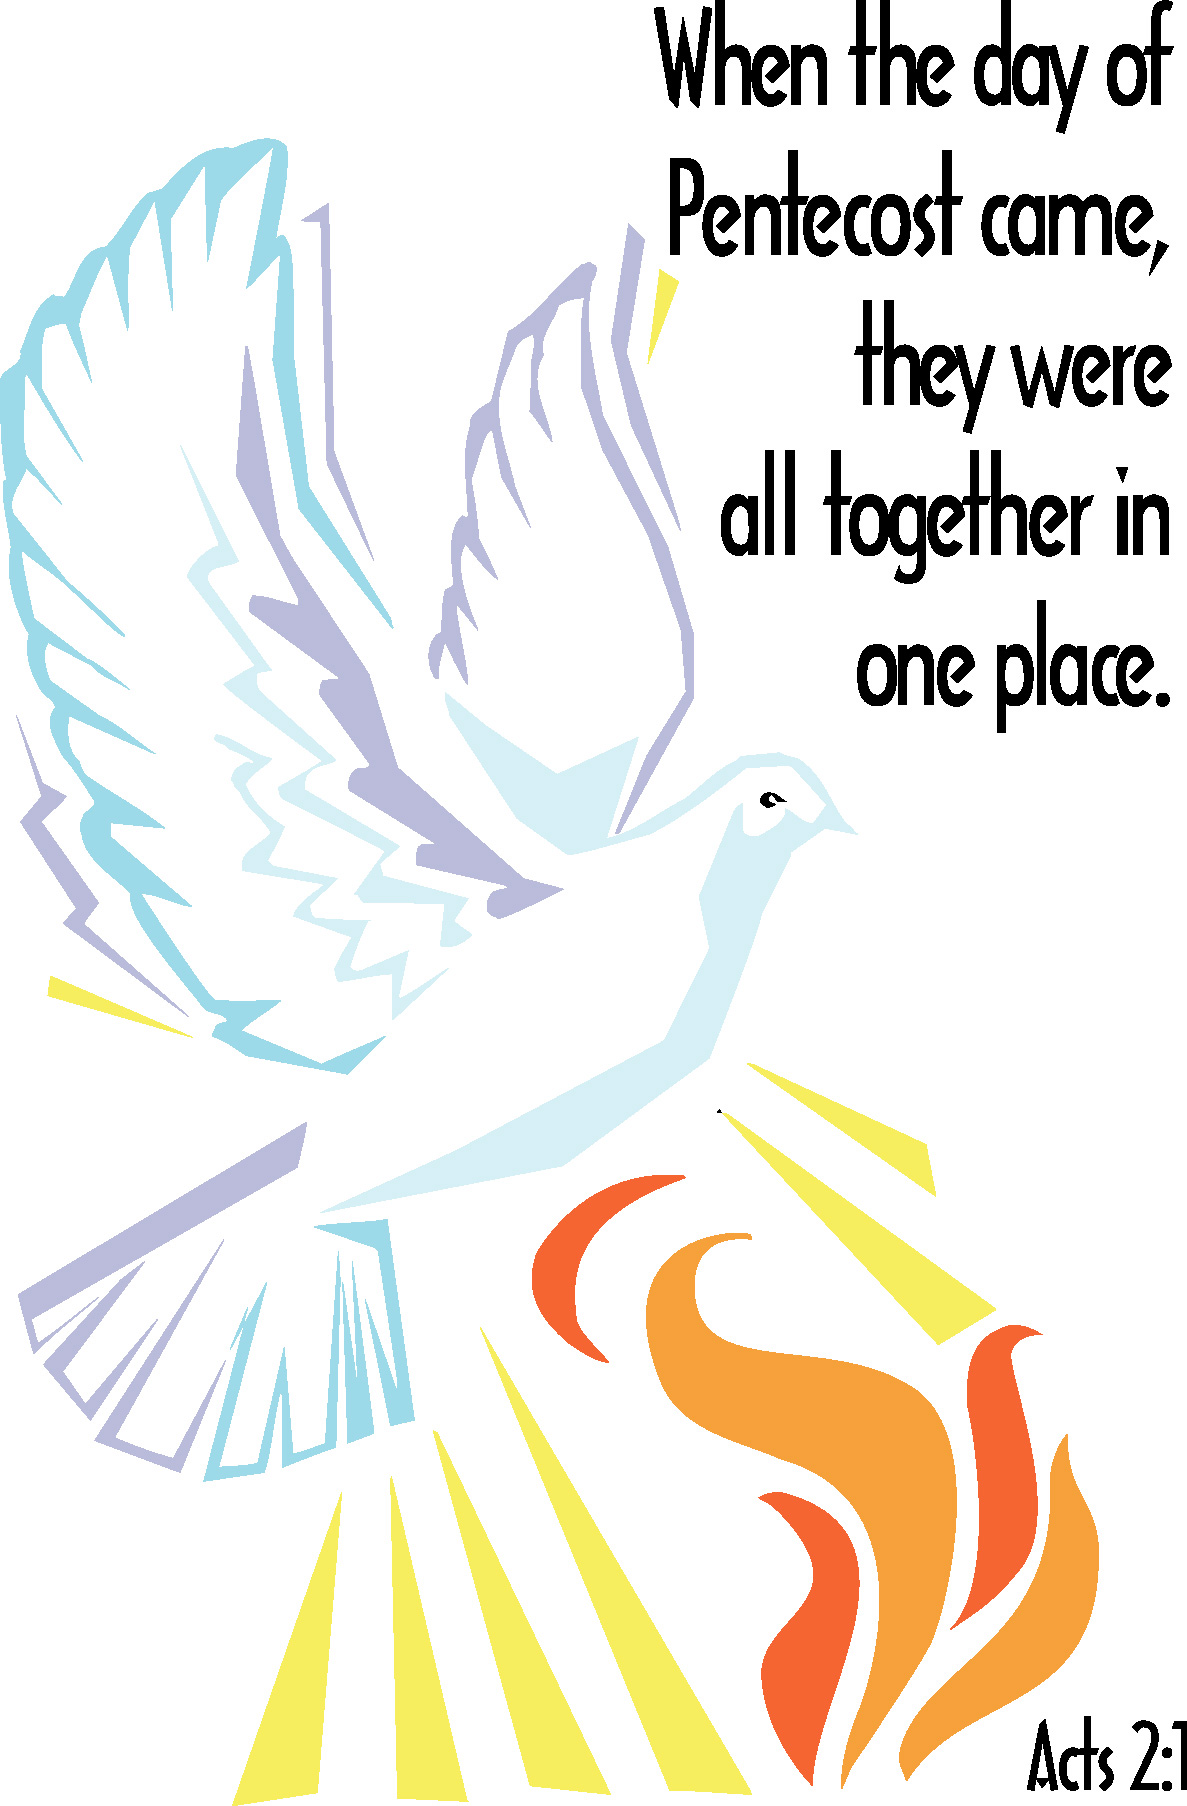 Free Catholic Confirmation Cliparts, Download Free Clip Art, Free.